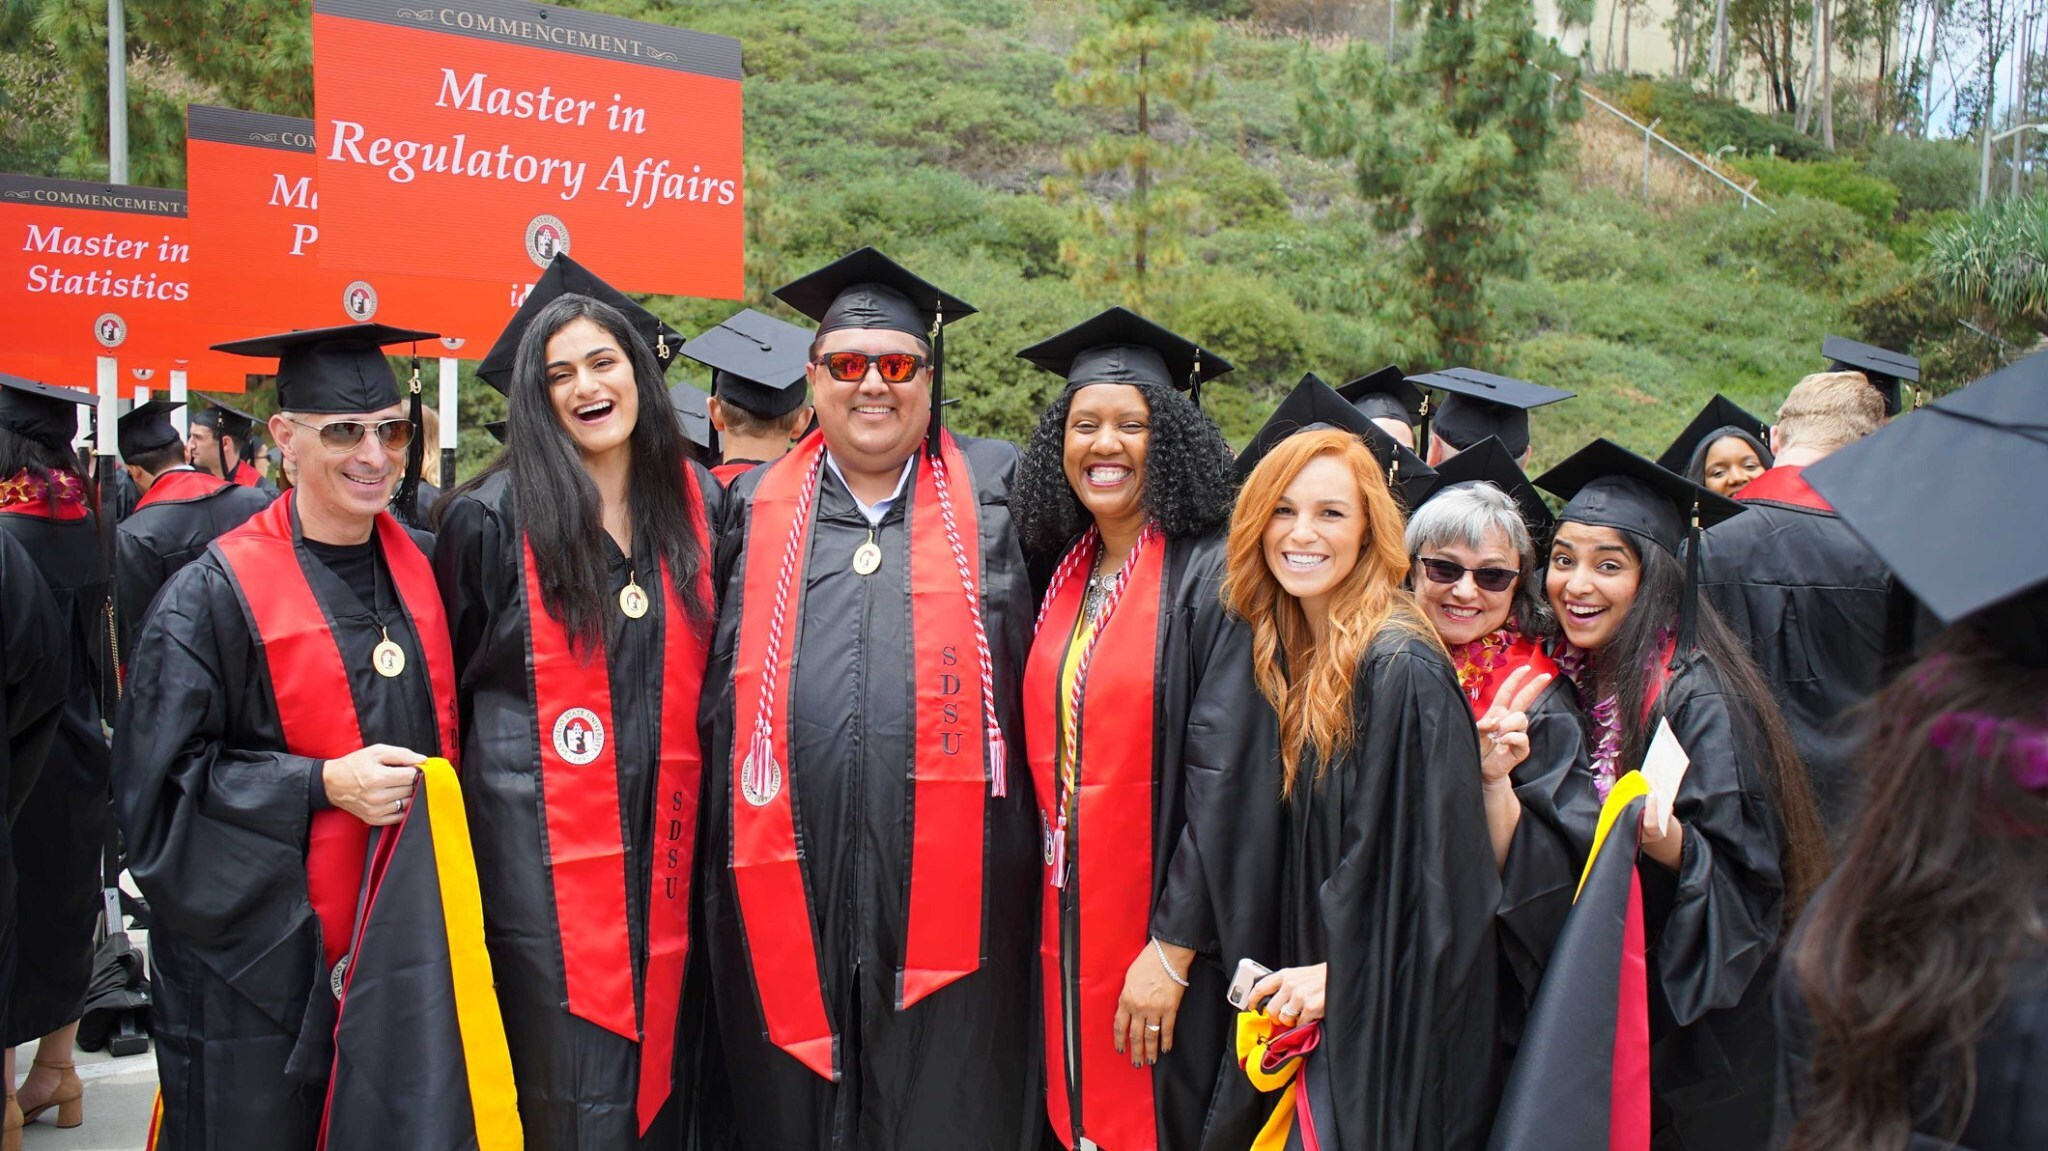 """Photo of Regulatory Affairs Graduates with a sign behind the graduates stating """"Master in Regulatory Affairs"""""""